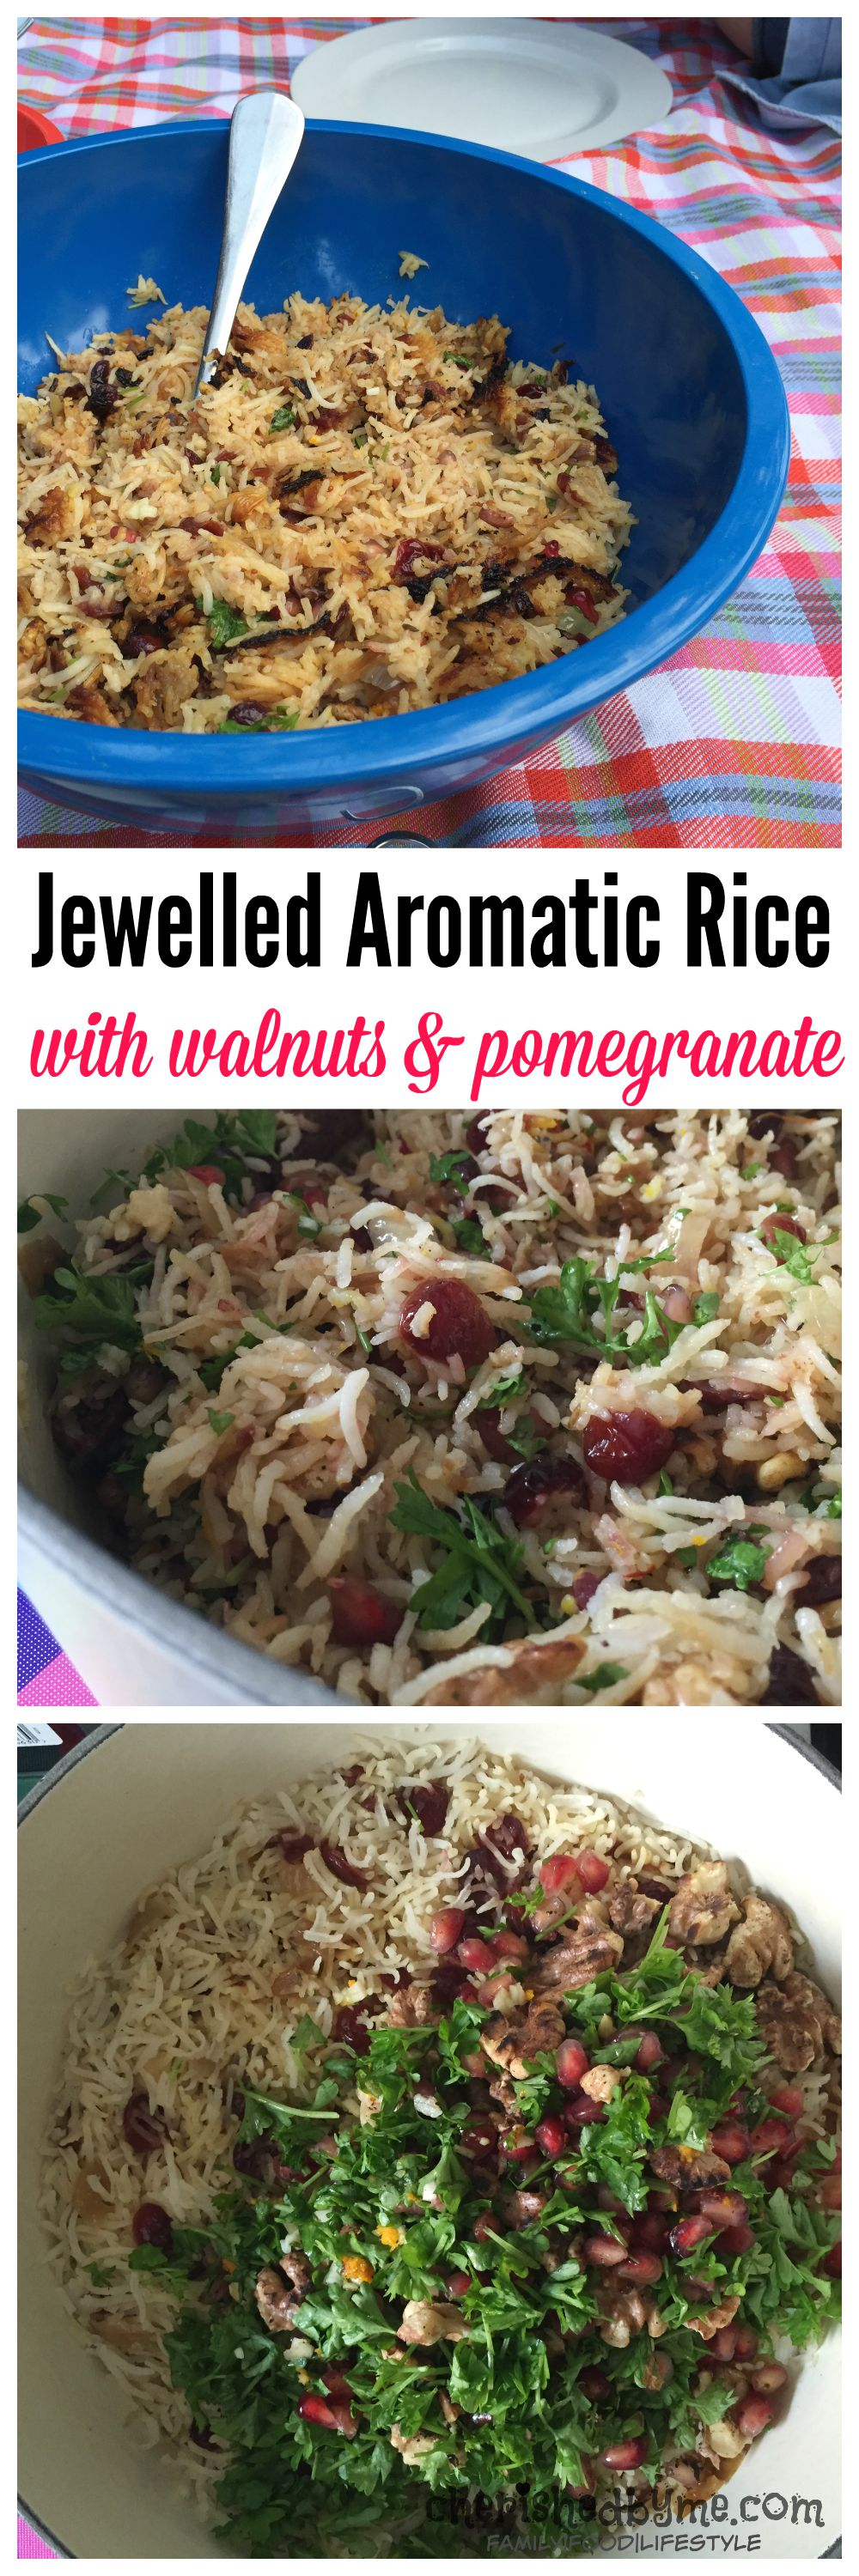 This is an easy but very tasty dish of jewelled aromatic rice with walnuts & pomegranate. With lots of flavour this healthy dish is naturally gluten free